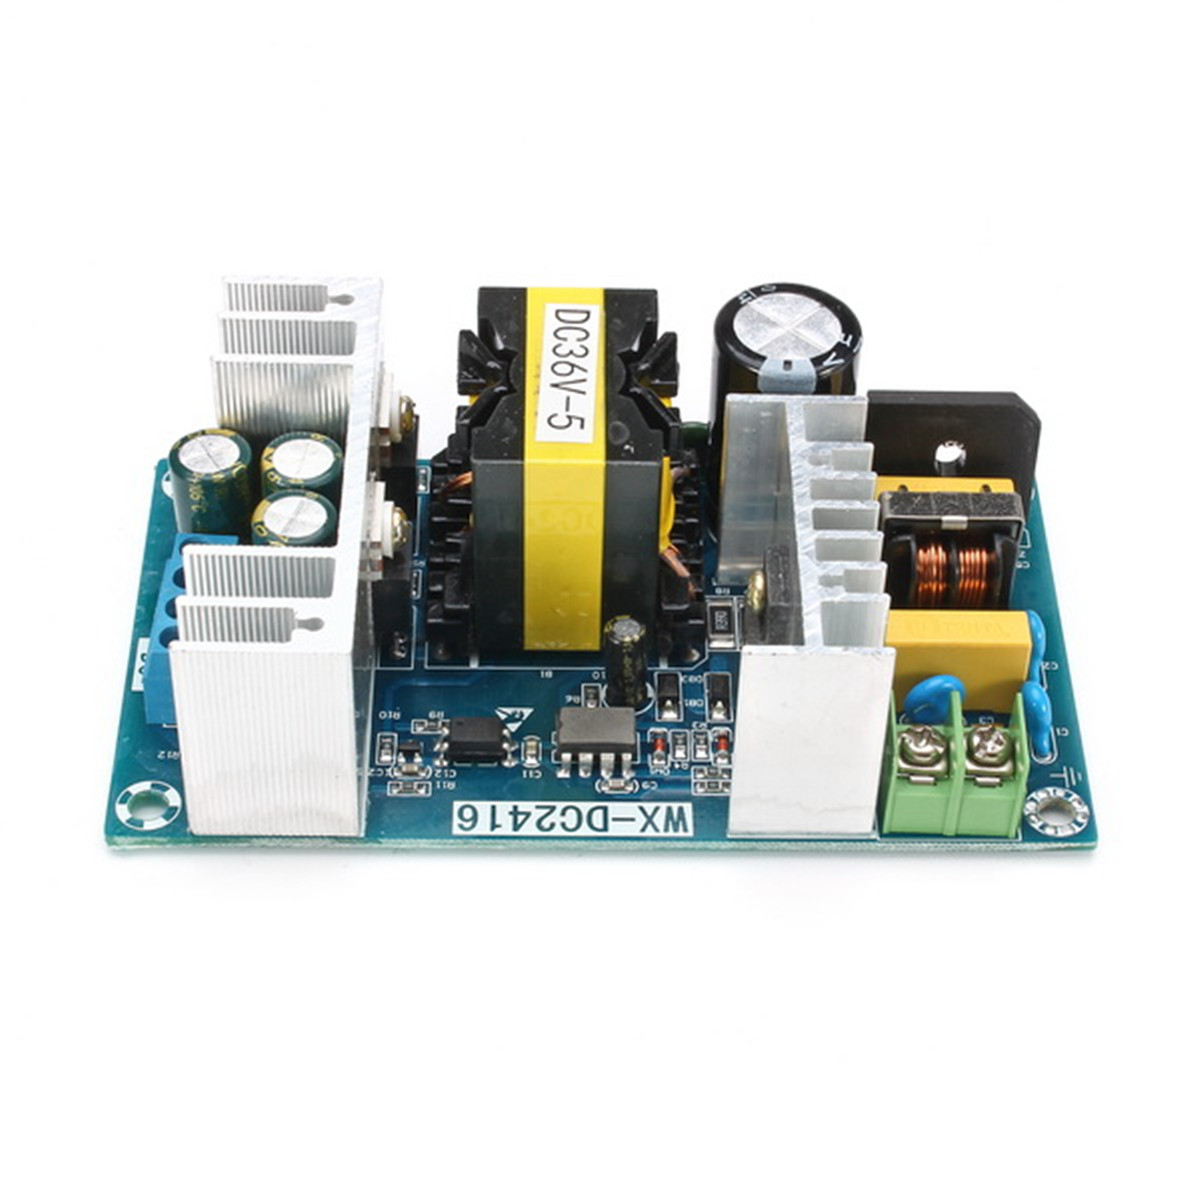 36V 5A 180W AC-DC Switching Power Supply Board High Power Industrial Module 60Hz New aiyima 36v 180w ac dc switching power supply board high power industrial power supply module